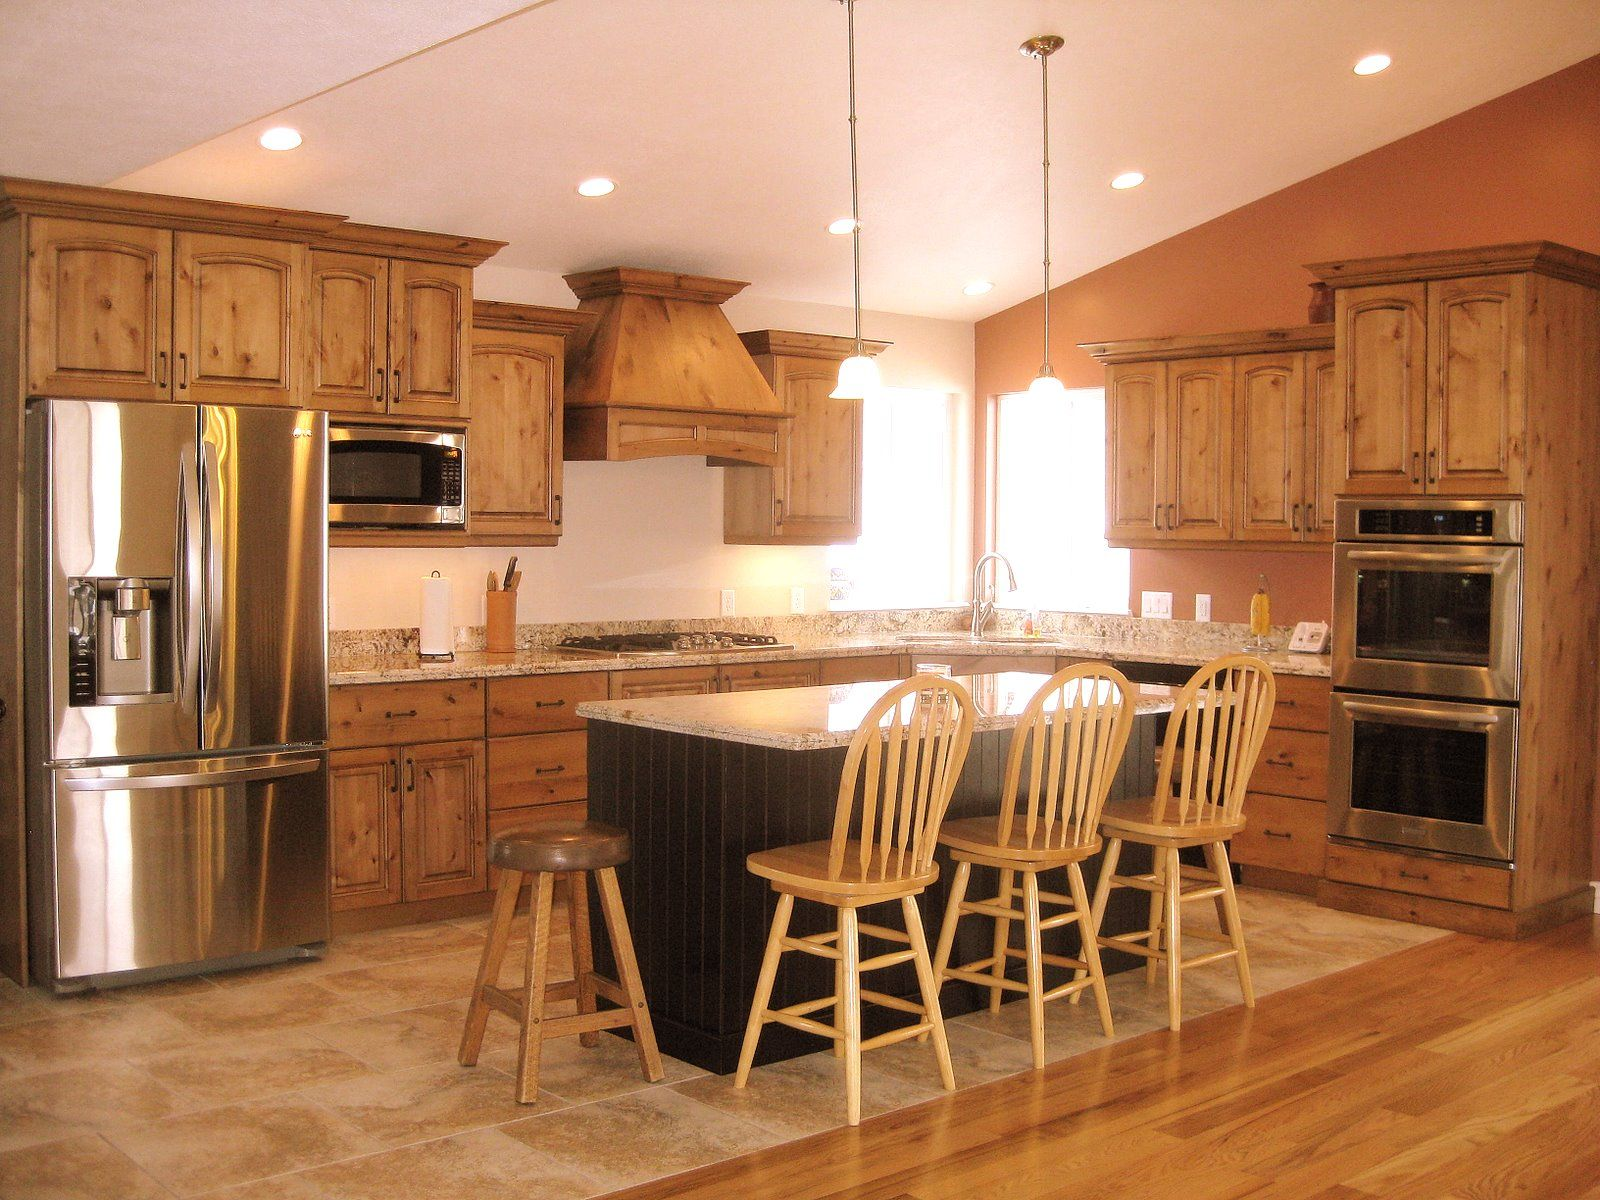 Knotty Alder Kitchen Cabinets Bead Board Island Alder Kitchen Cabinets Knotty Alder Cabinets Beadboard Kitchen